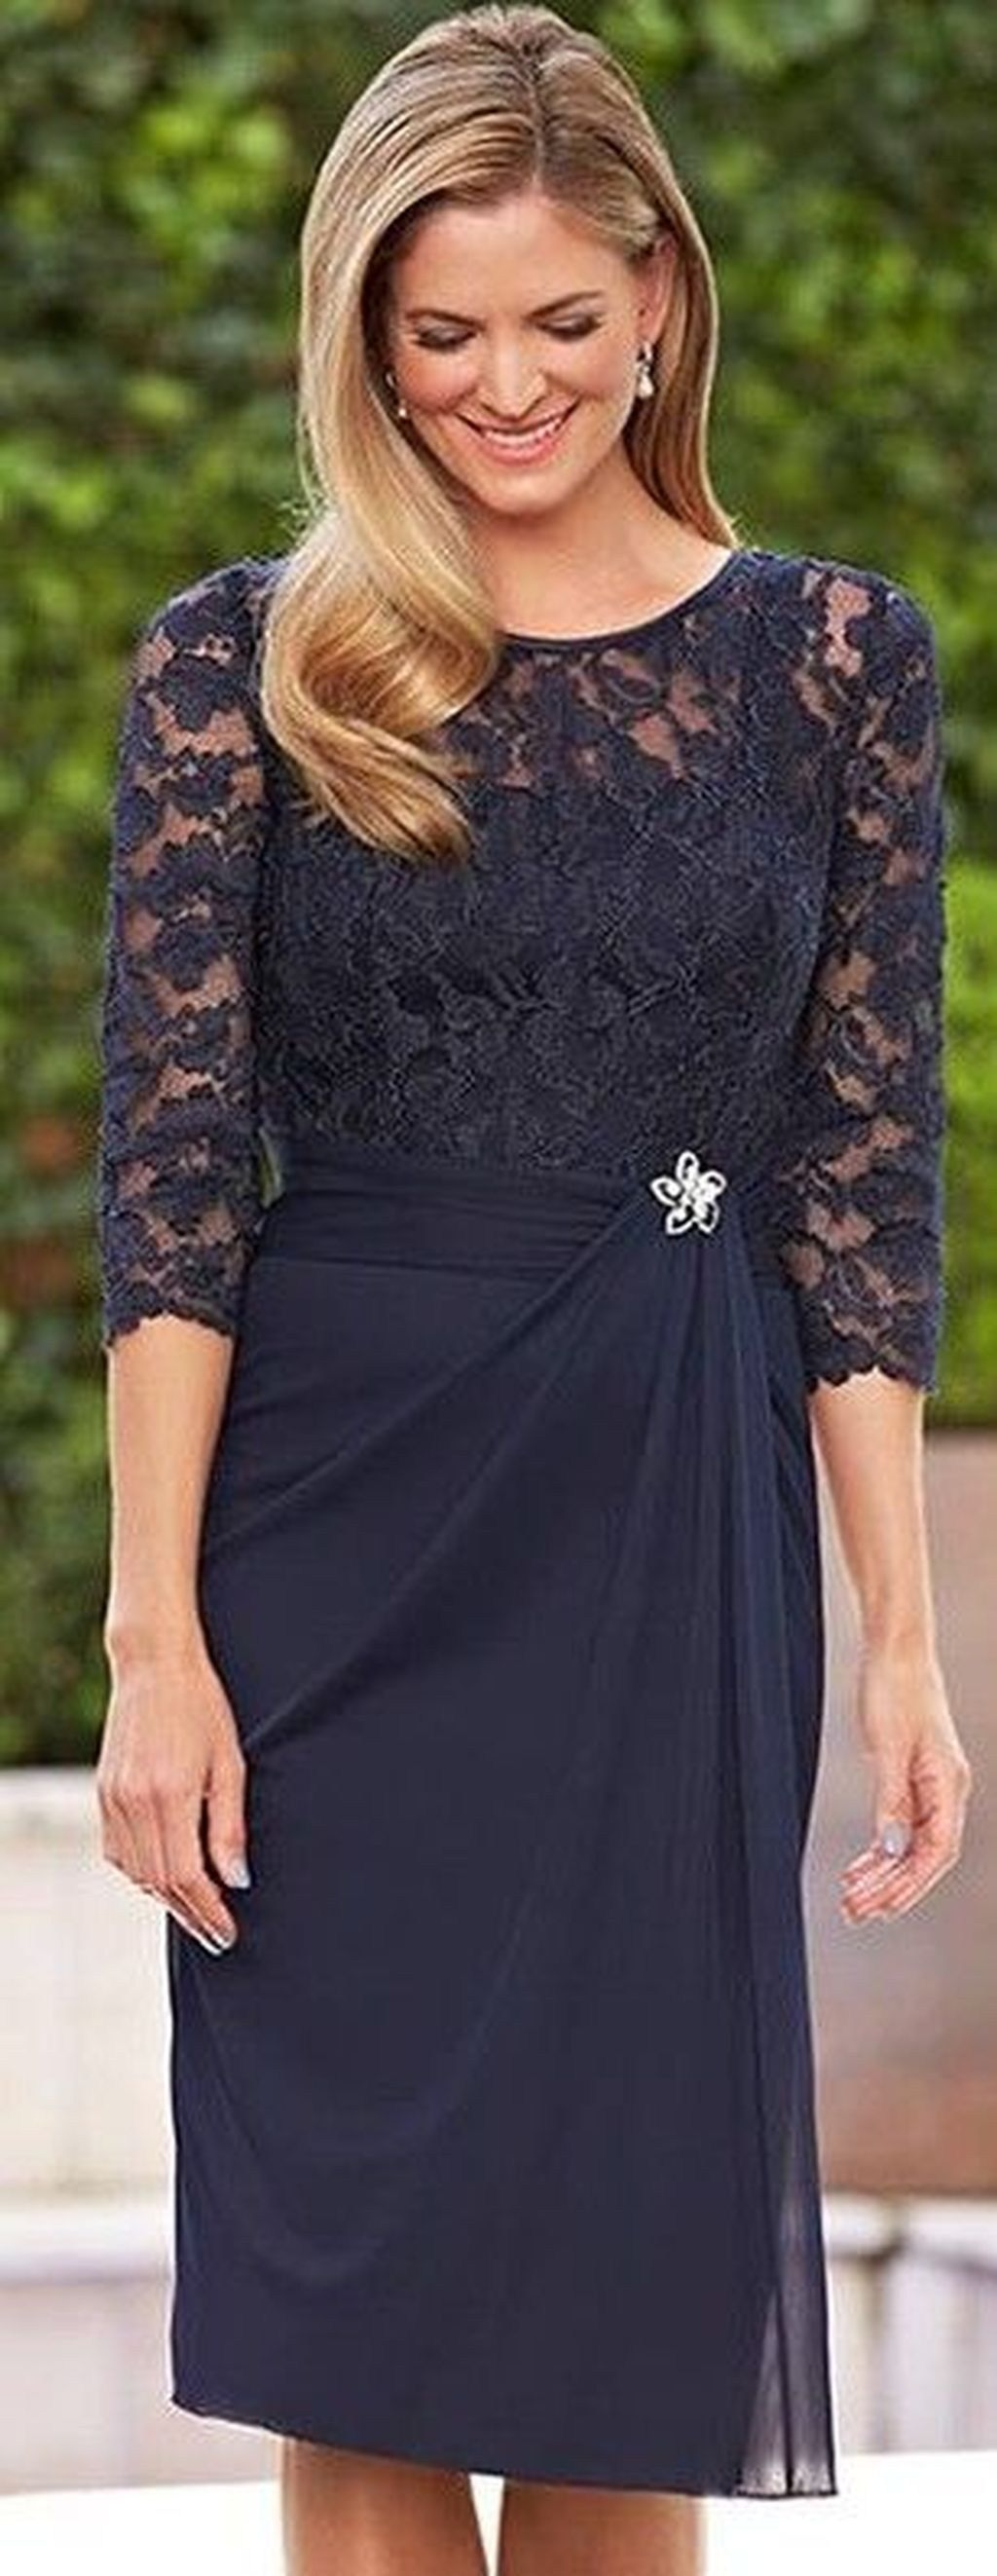 Casual mother of the groom dresses for outdoor wedding  Mother Of The Bride Dresses Outfits Ideas For Summer   Beautiful